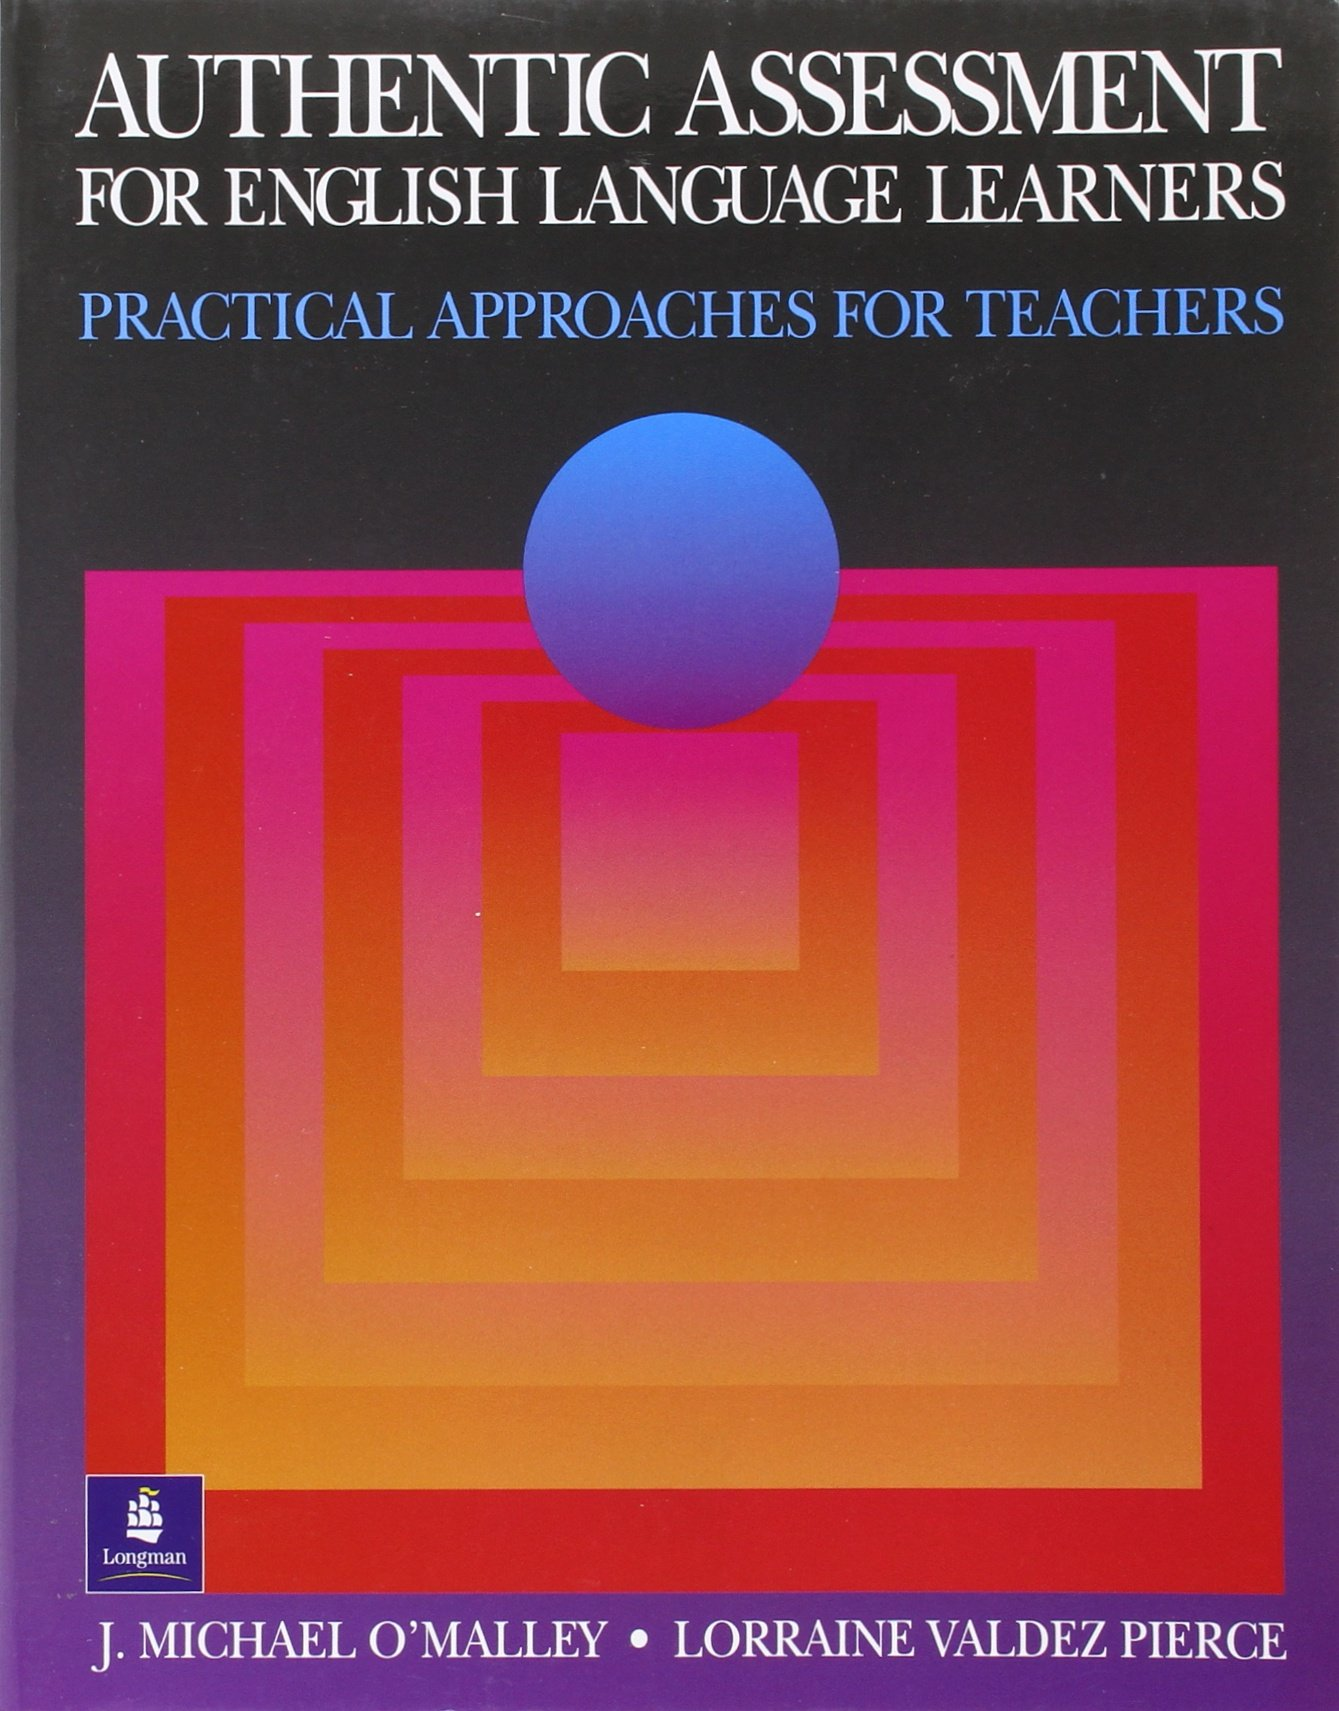 Authentic Assessment for English Language Learners: Practical Approaches for Teachers by J Michael O Malley